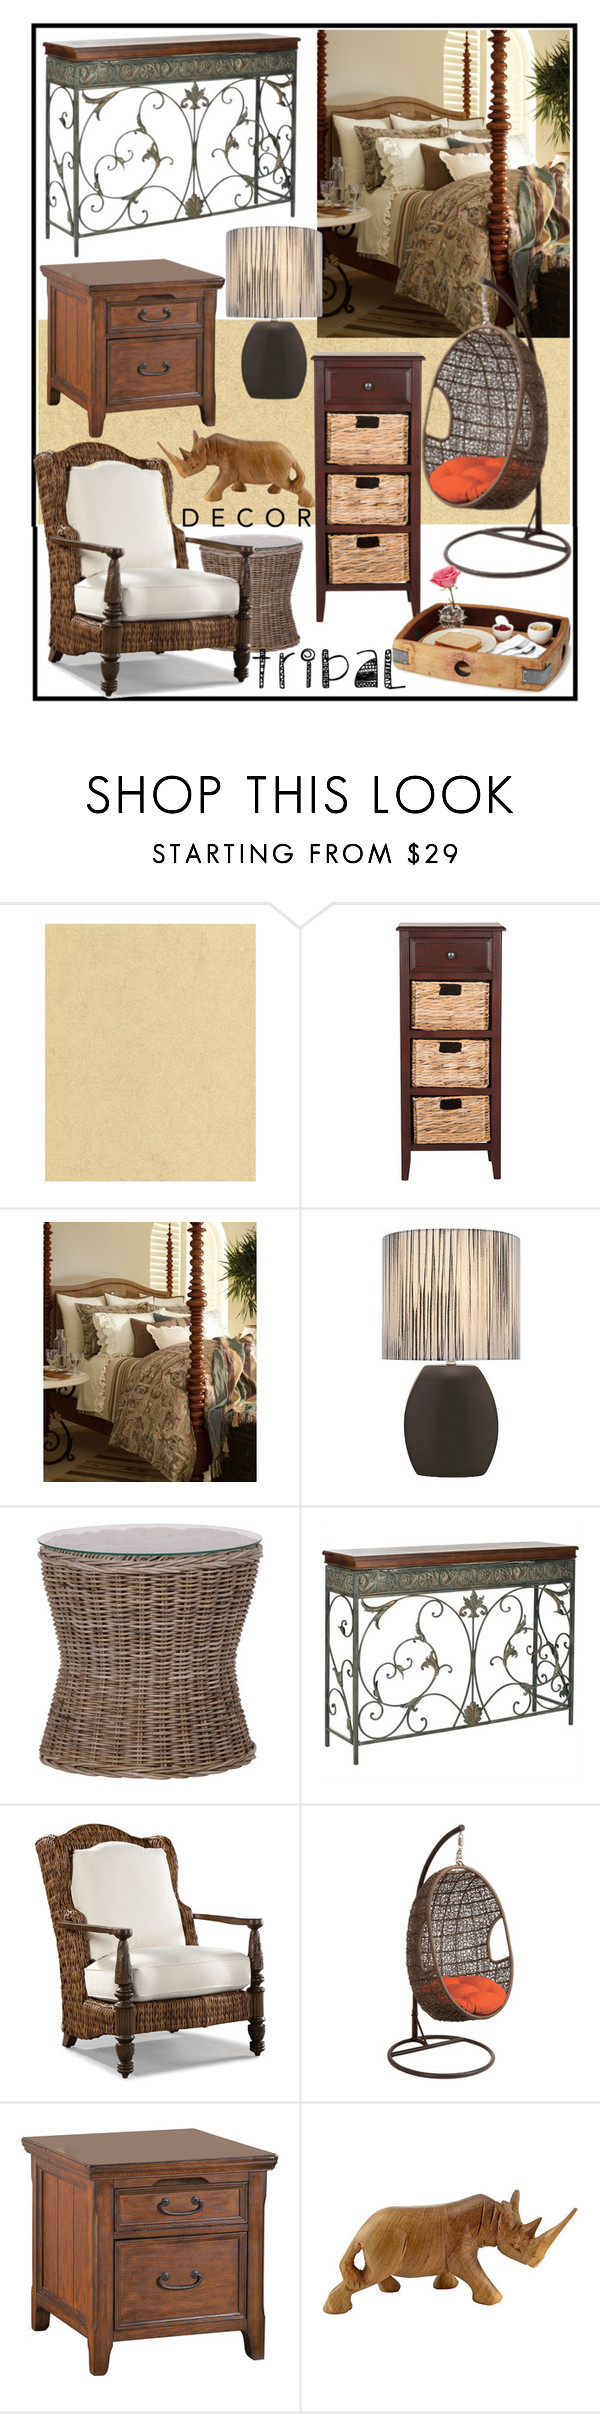 """""""TRIBAL DECOR: OUT OF AFRICA!!!!"""" by kskafida ❤ liked on Polyvore featuring interior, interiors, interior design, home, home decor, interior decorating, Graham & Brown, Safavieh, Ralph Lauren and Lite Source"""